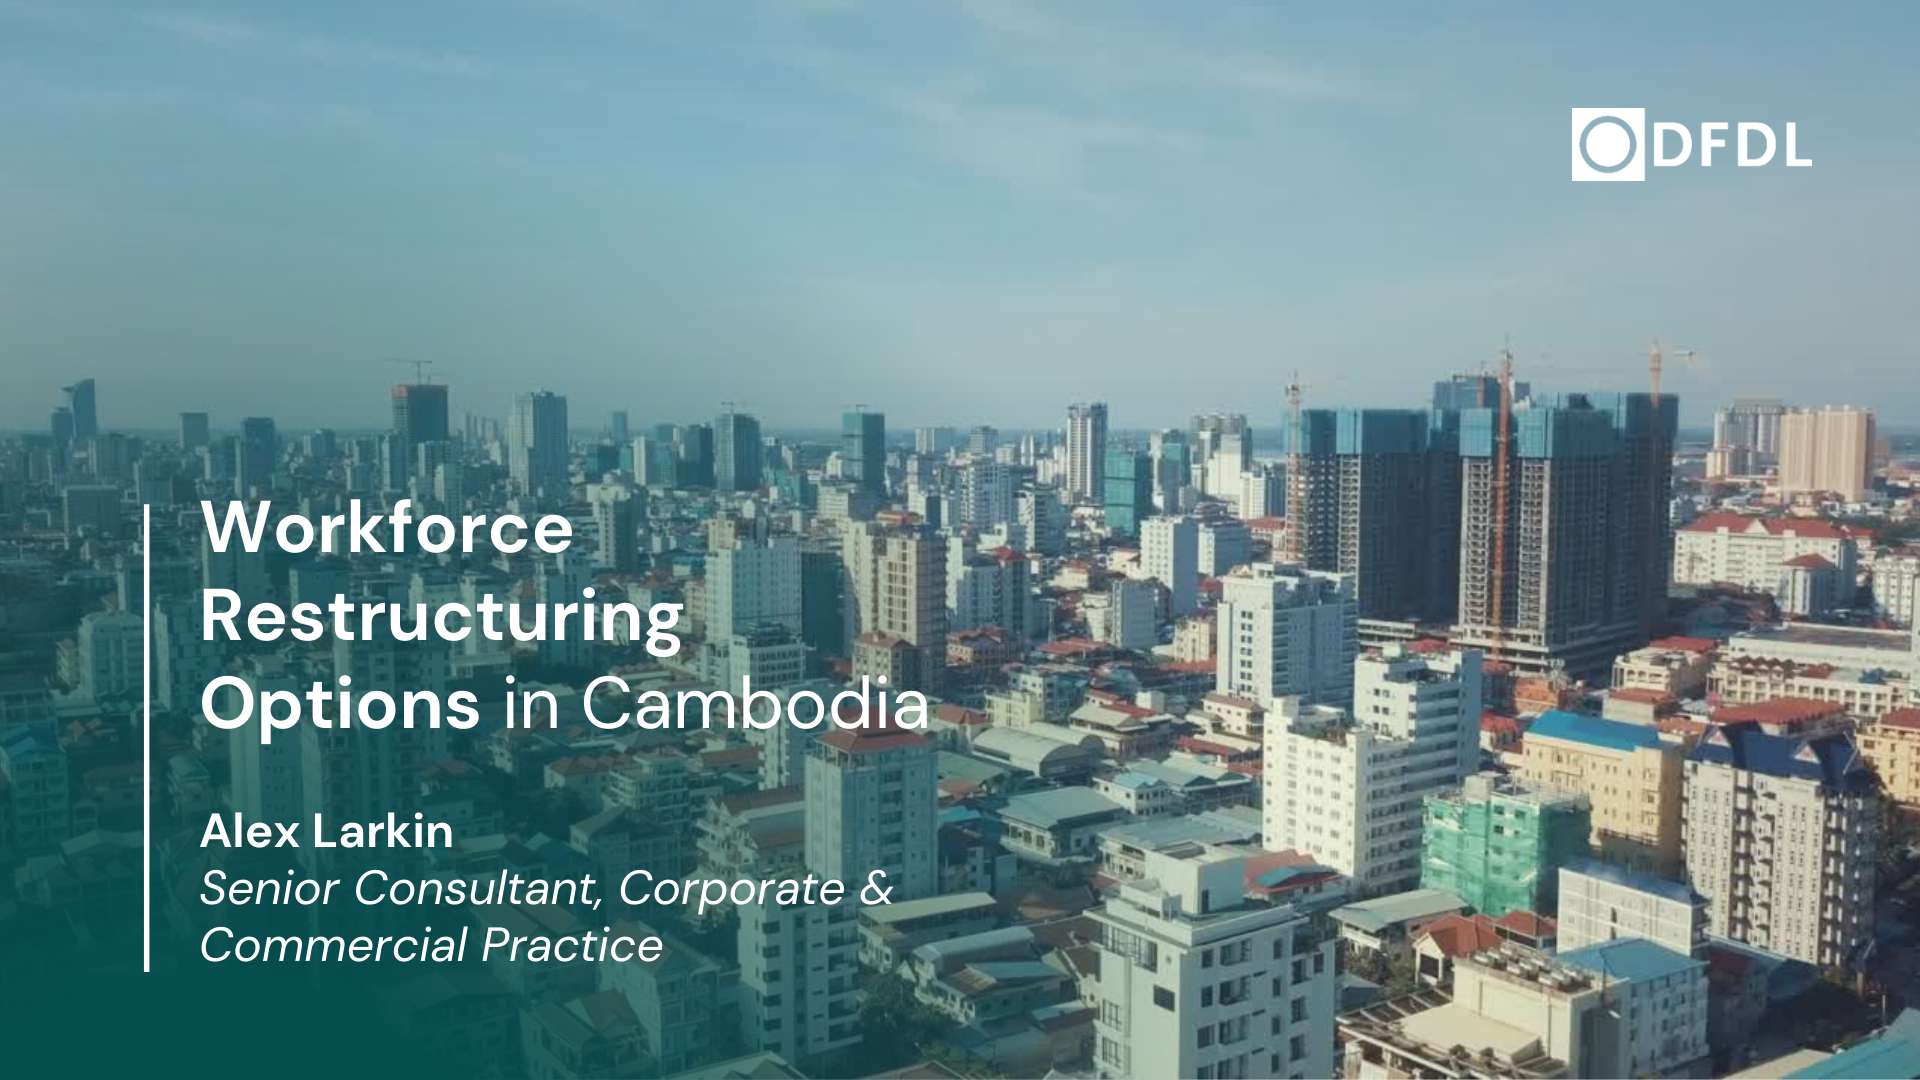 Workforce Restructuring Options in Cambodia